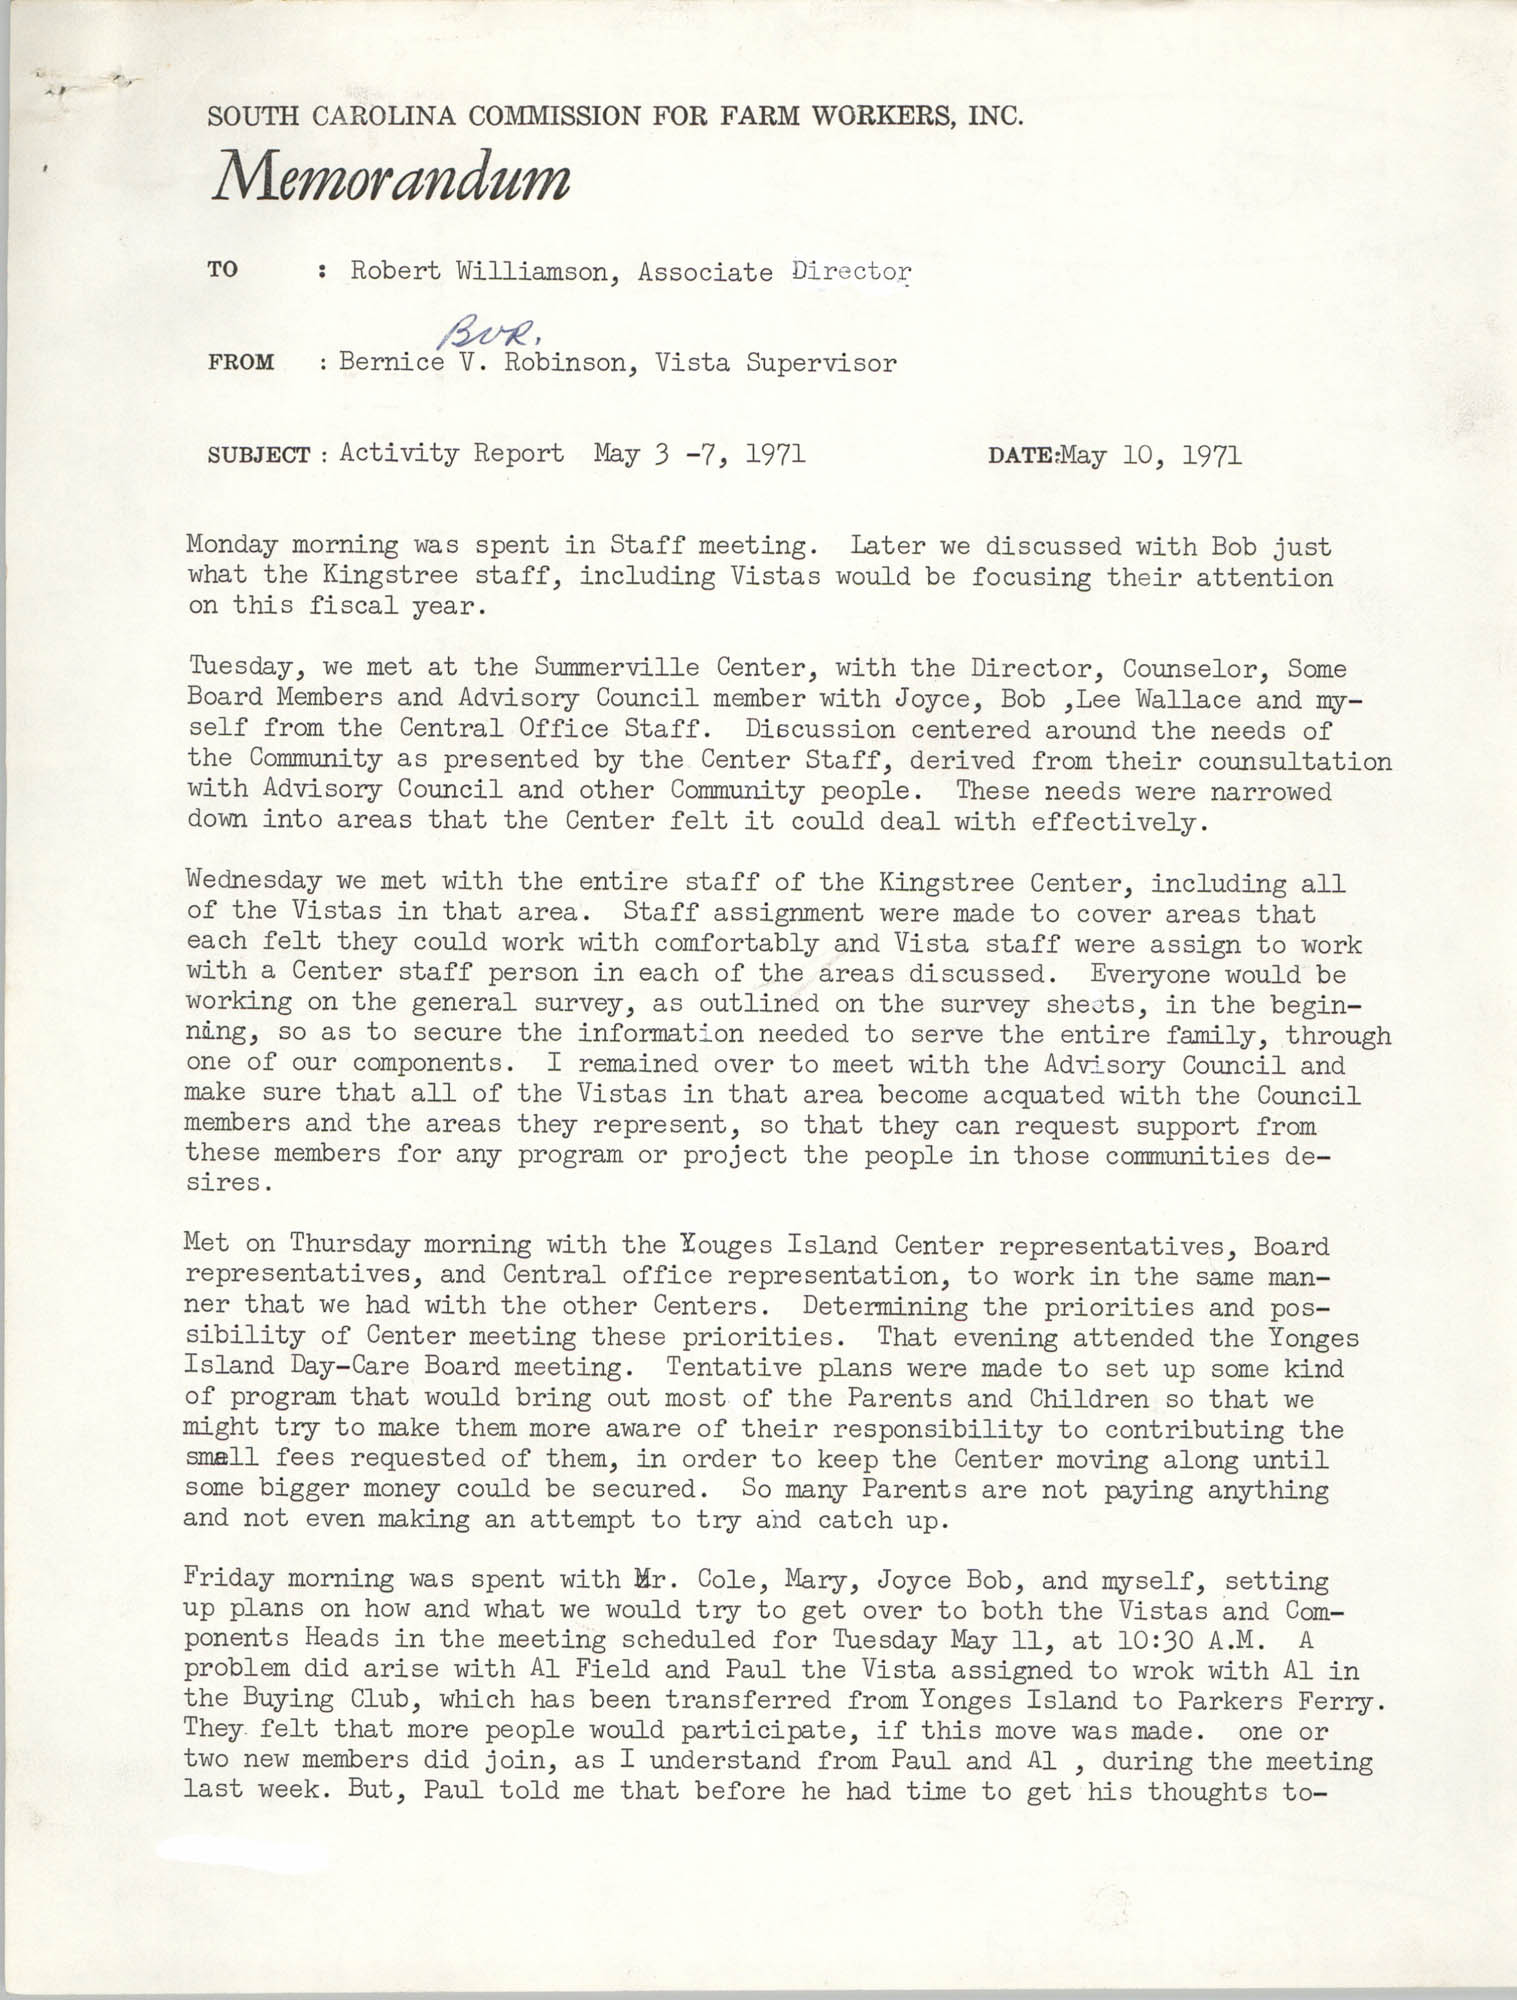 Memorandum from Bernice V. Robinson to Robert Williamson, May 10, 1971